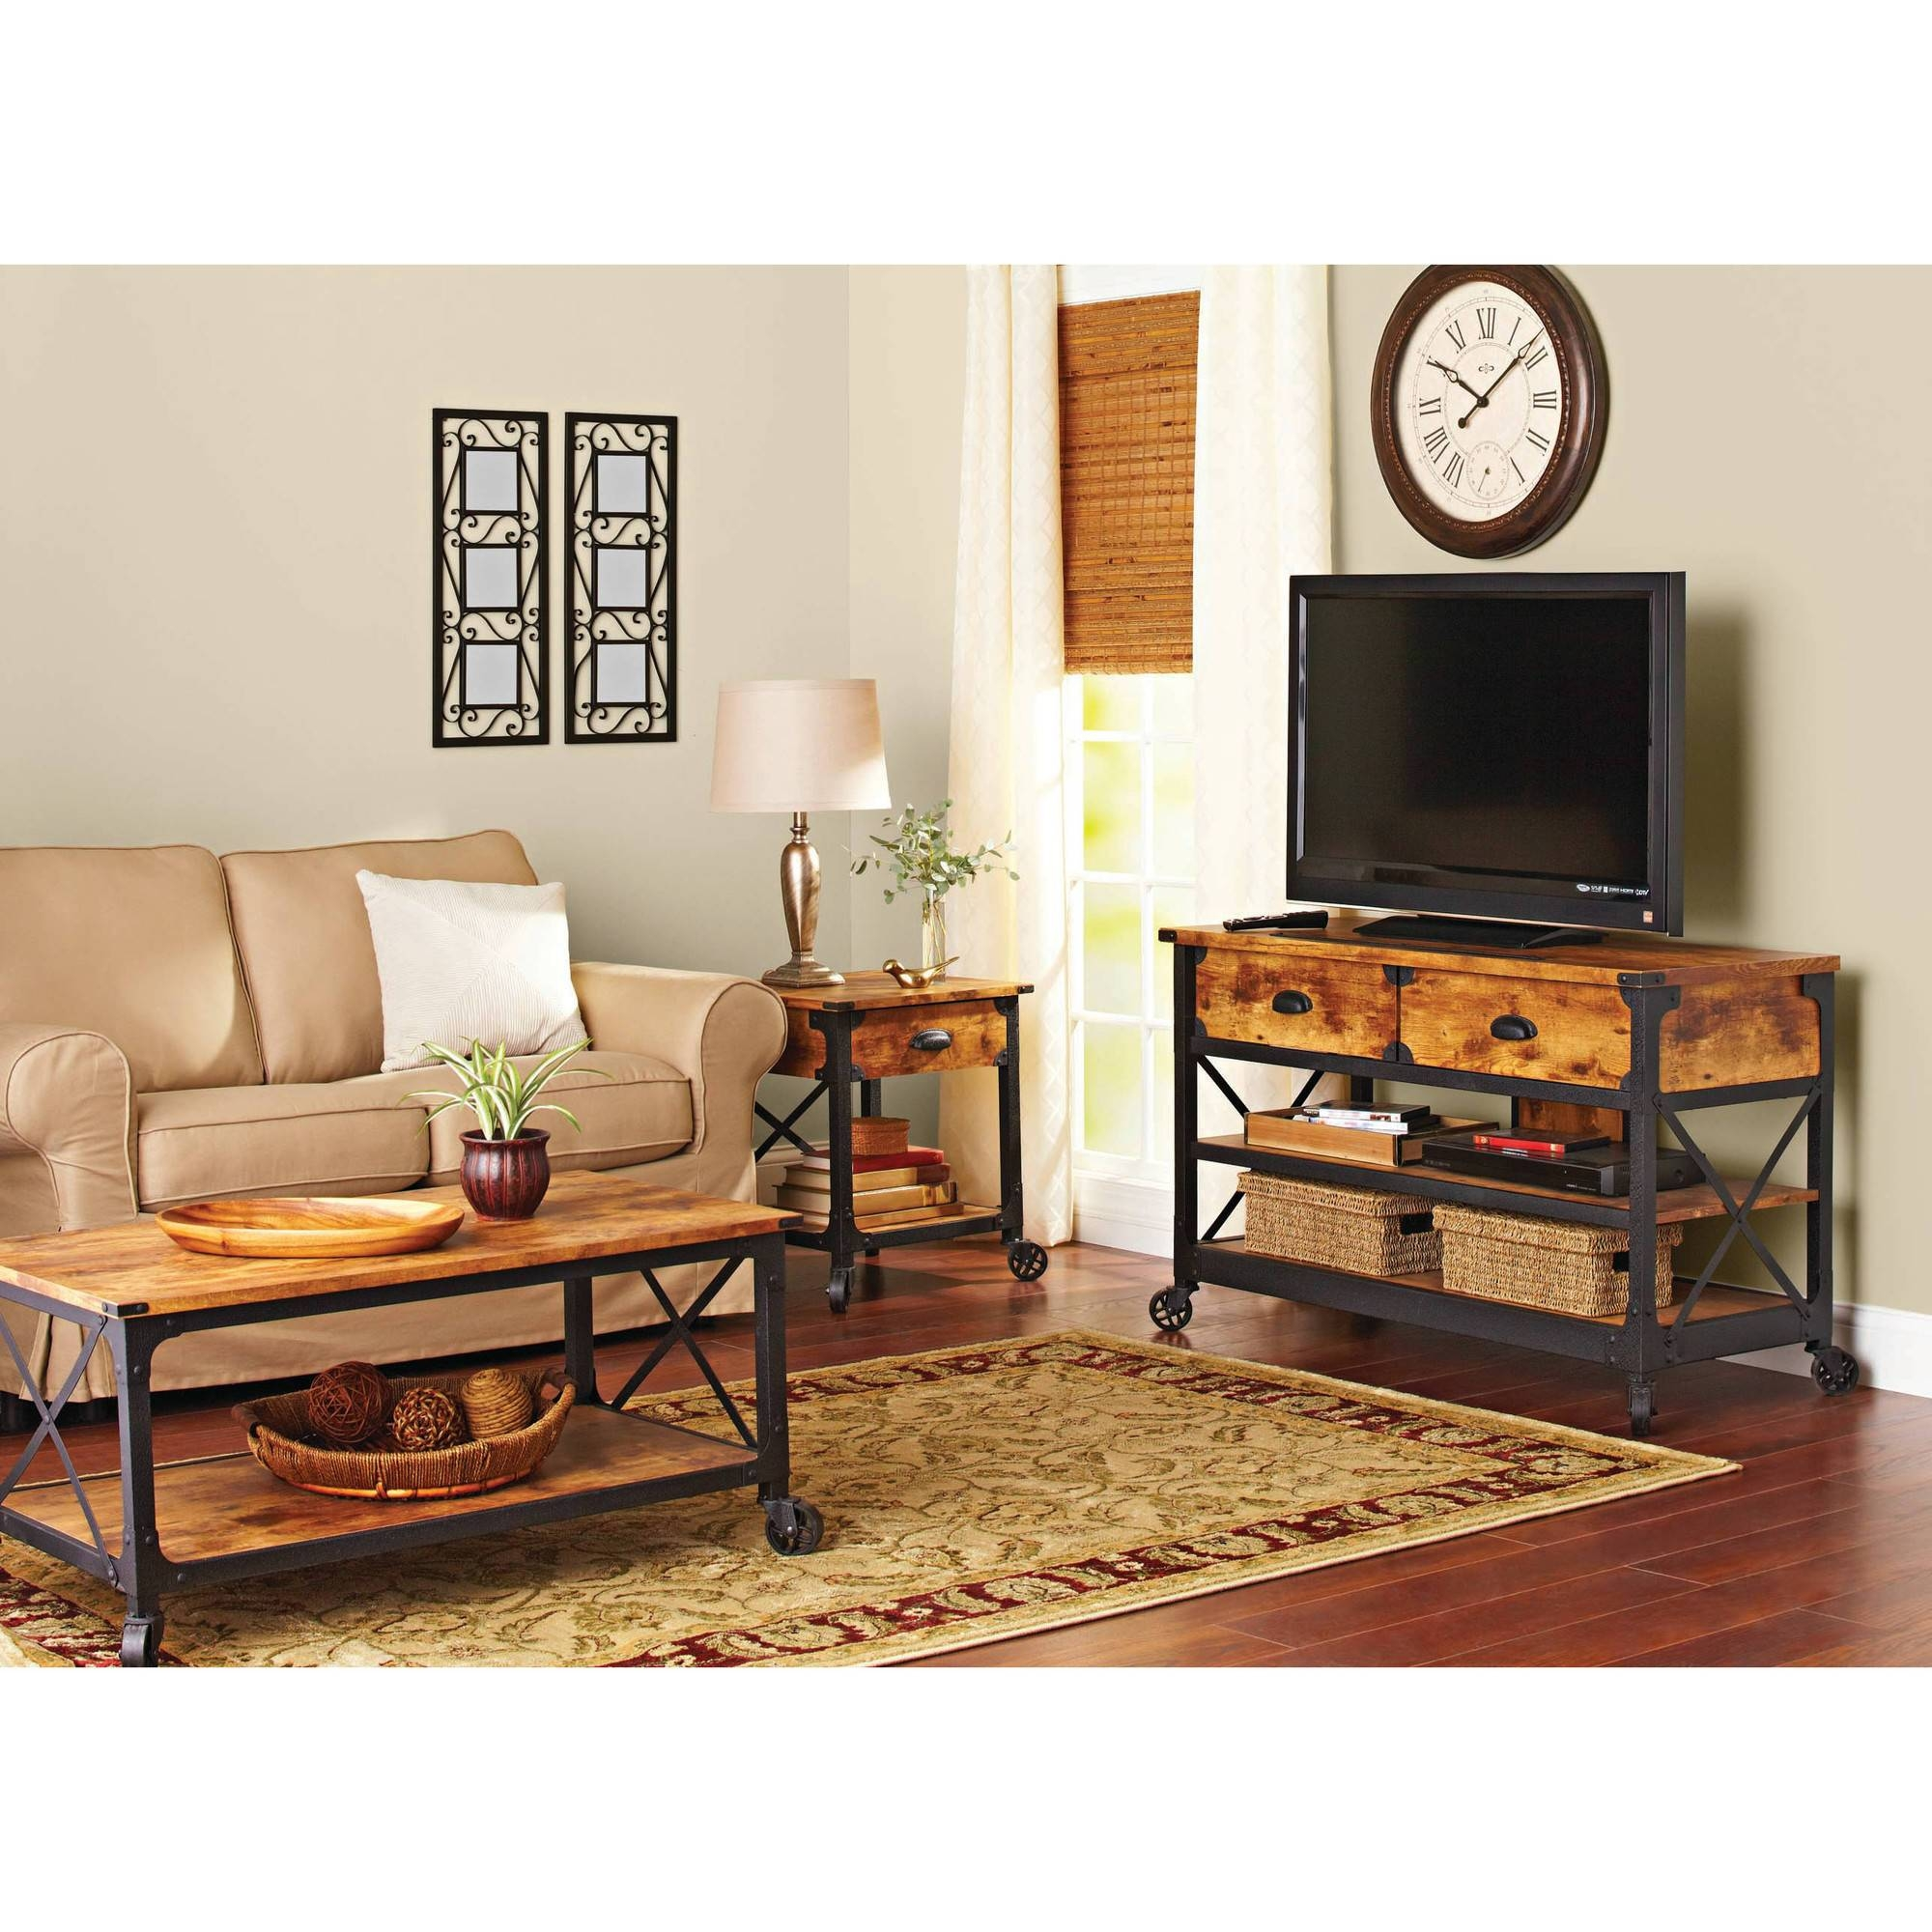 15 Best Collection of Tv Cabinets and Coffee Table Sets